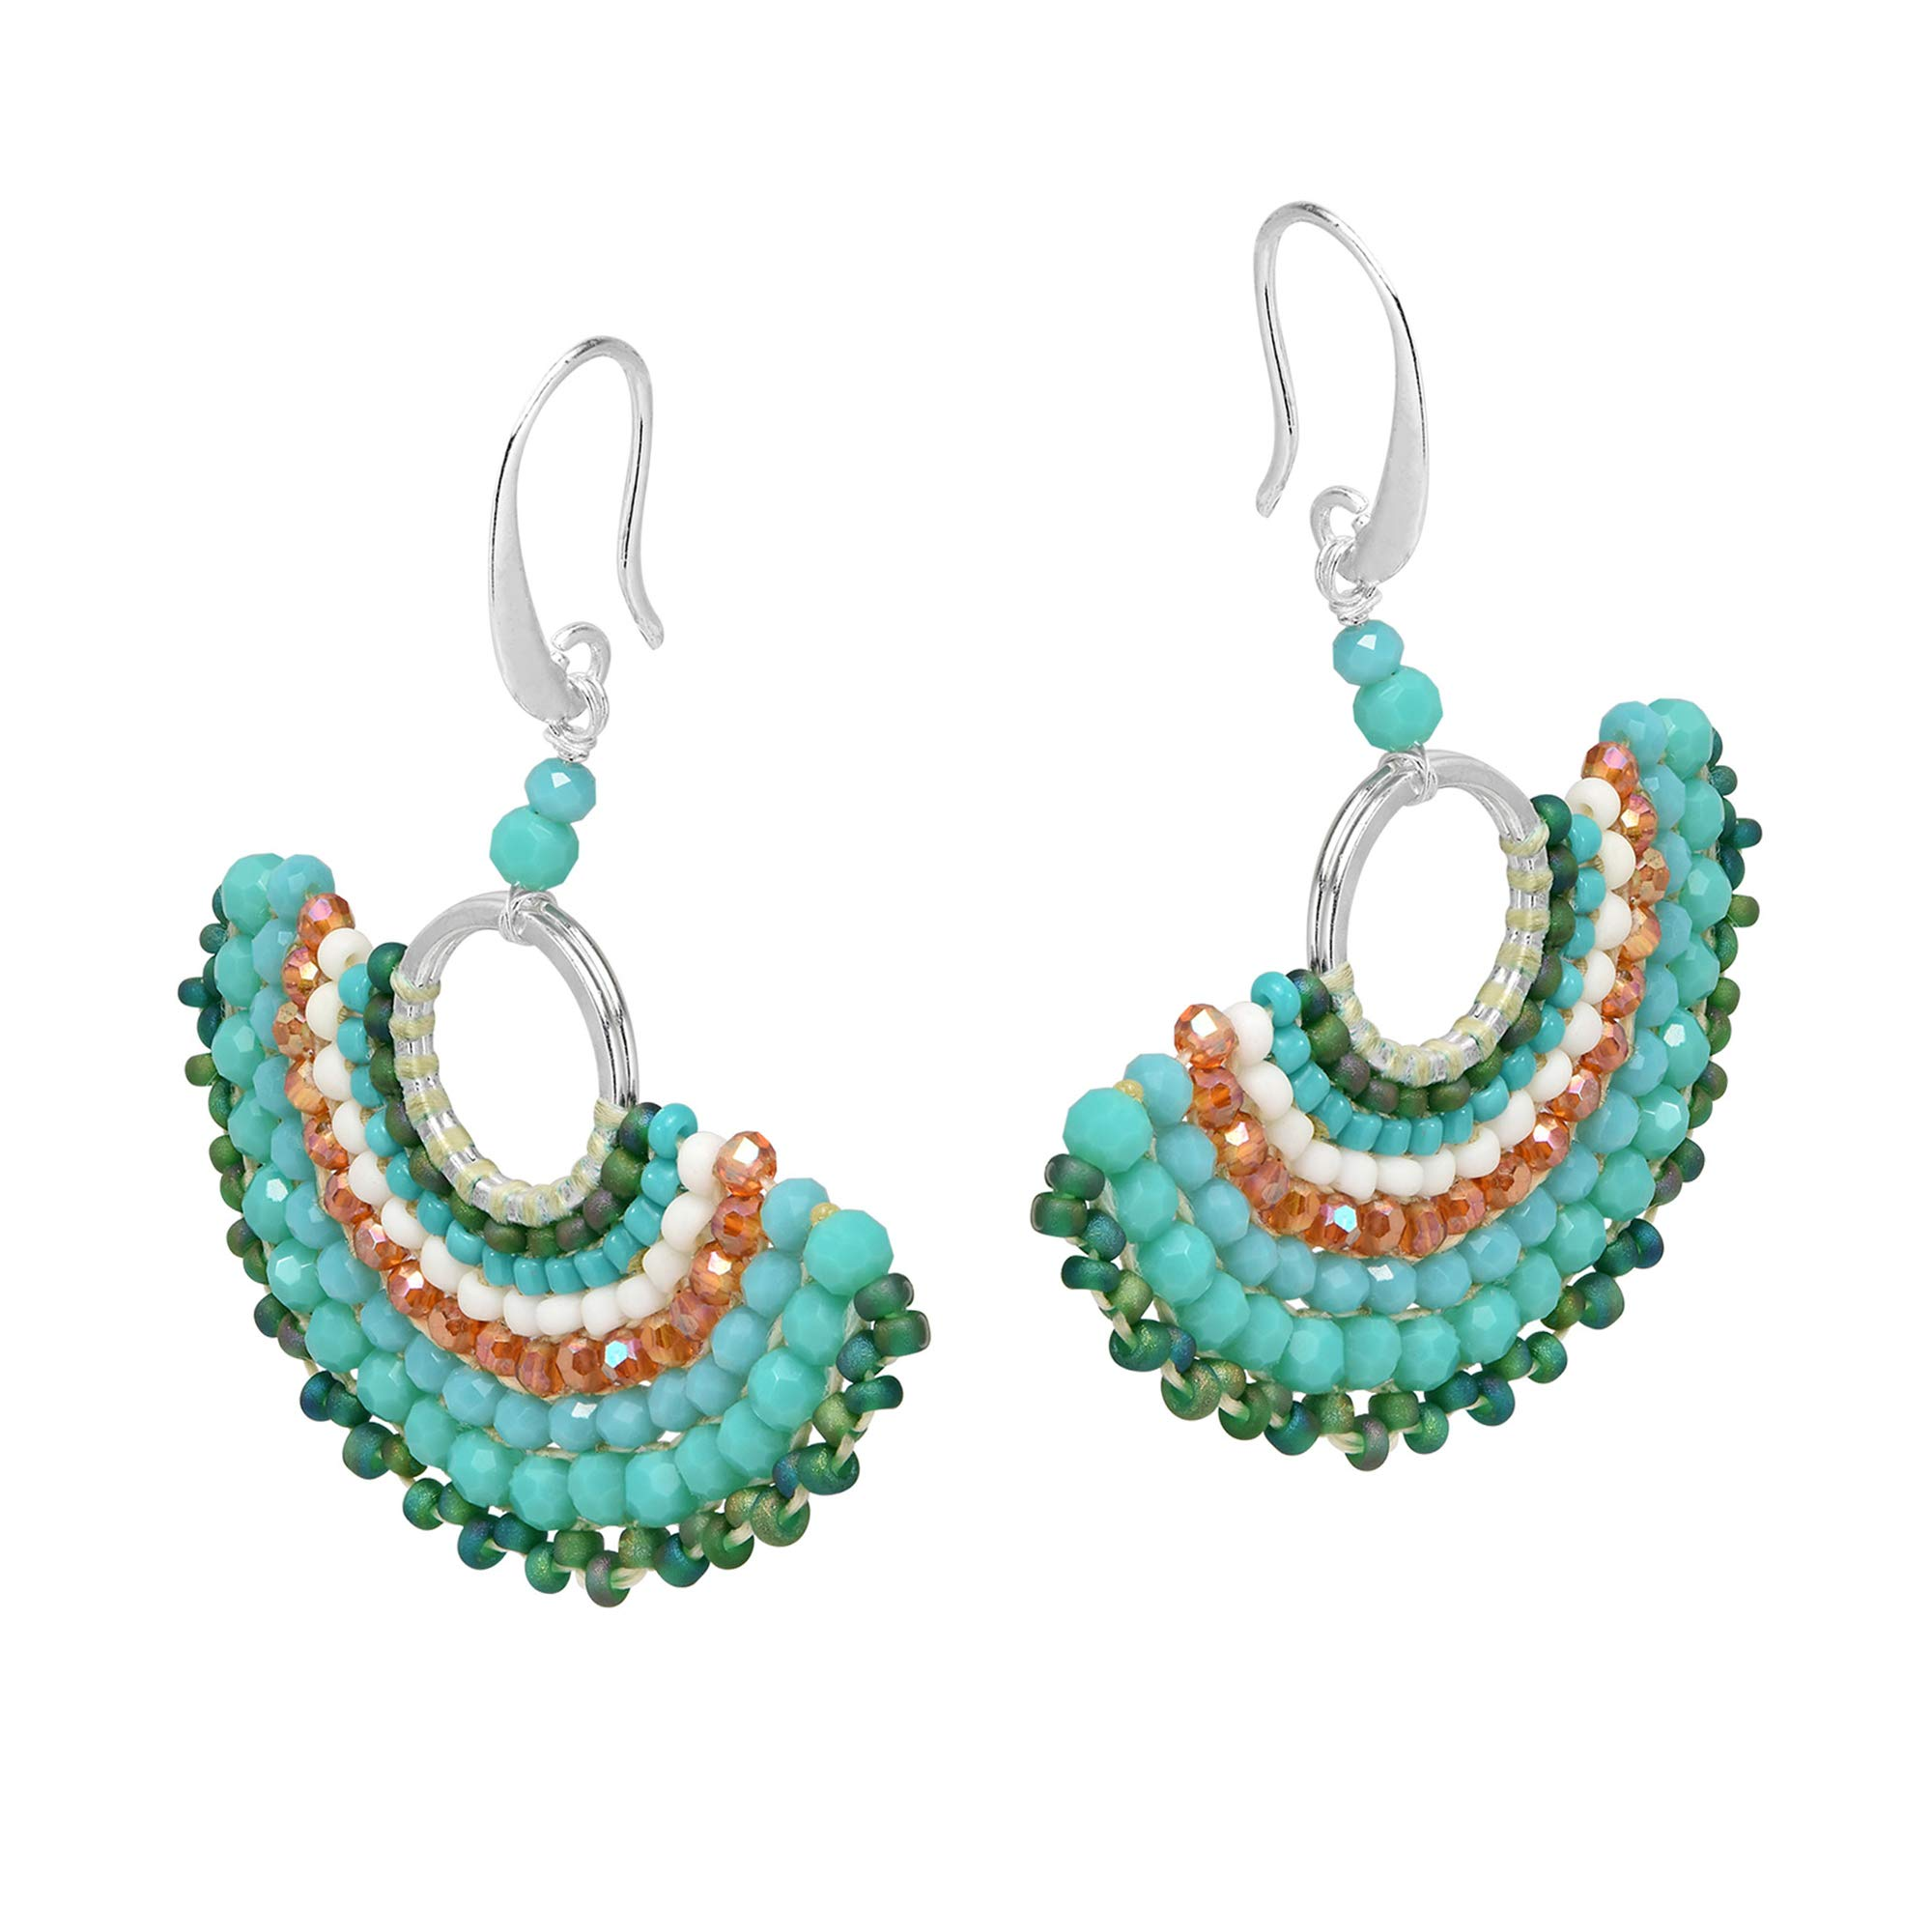 Chic Simulated Turquoise & Fashion Crystal & Fashion Bead Fan .925 Sterling Silver Dangle Earrings by AeraVida (Image #2)